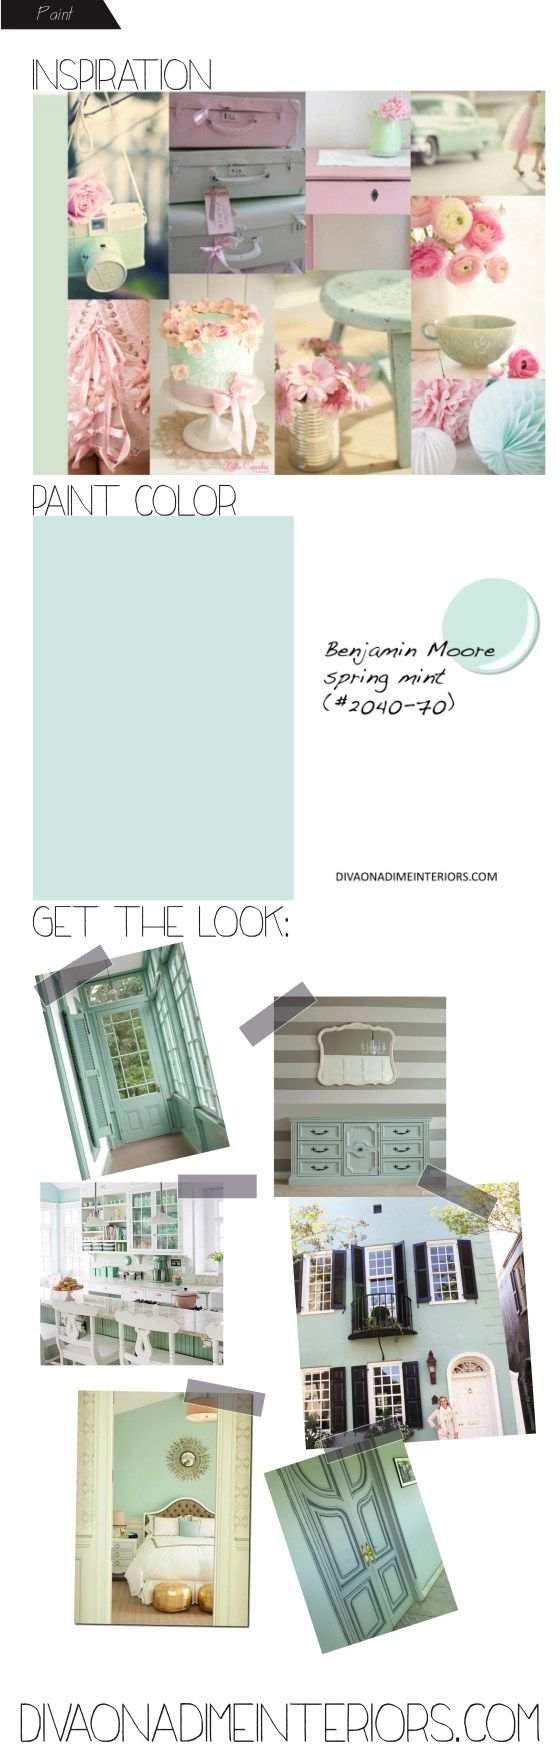 Shabby chic bedroom paint colors - Love Shabby Chic Wonder If Hubby Would Ever Let Me Decorate A Room With Pink Mint Paint Colorsbenjamin Moore Colorsbedroom